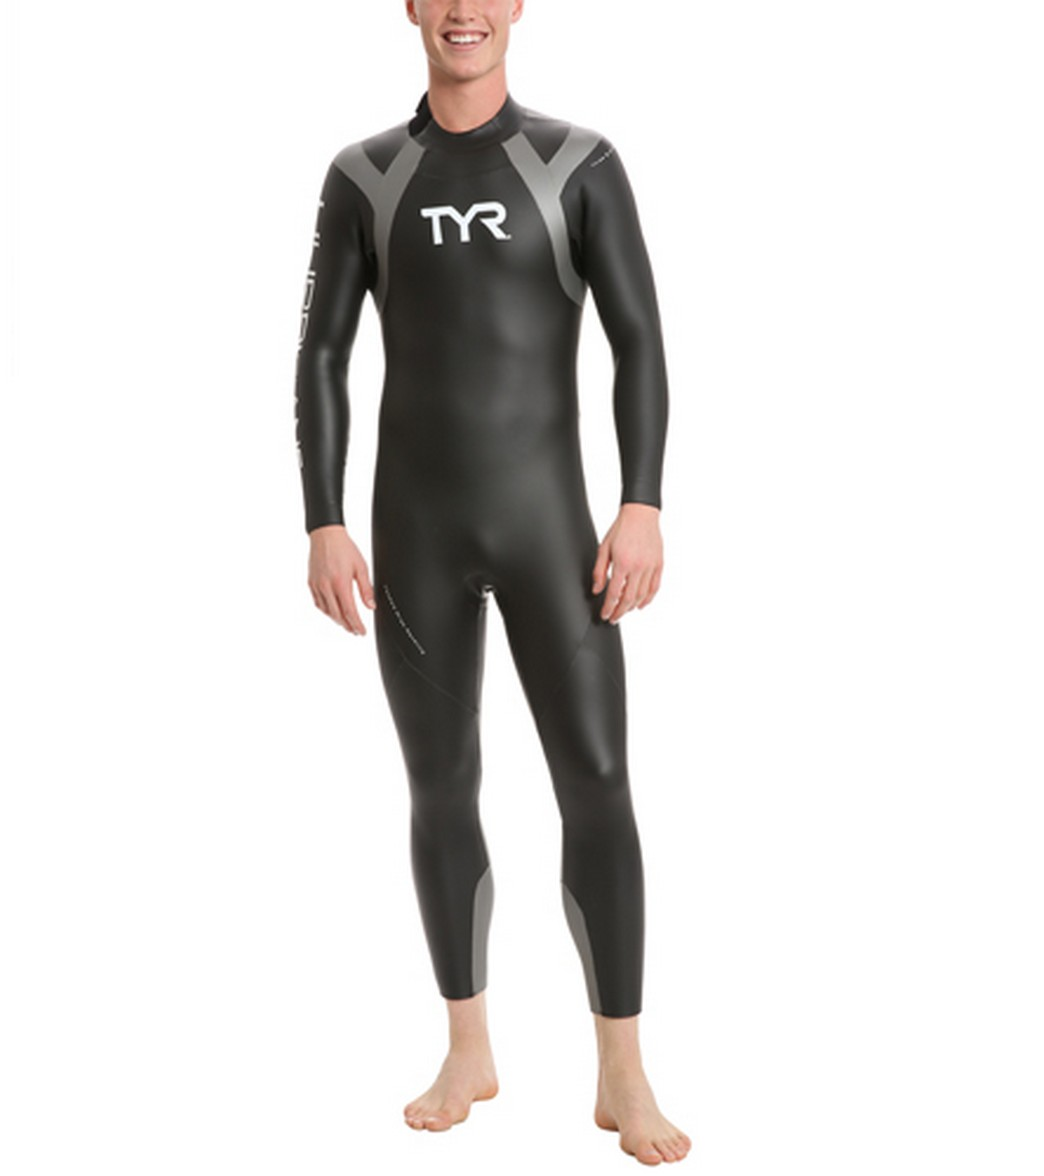 ef37563eb5e TYR Men's Hurricane C1 Wetsuit at SwimOutlet.com - Free Shipping